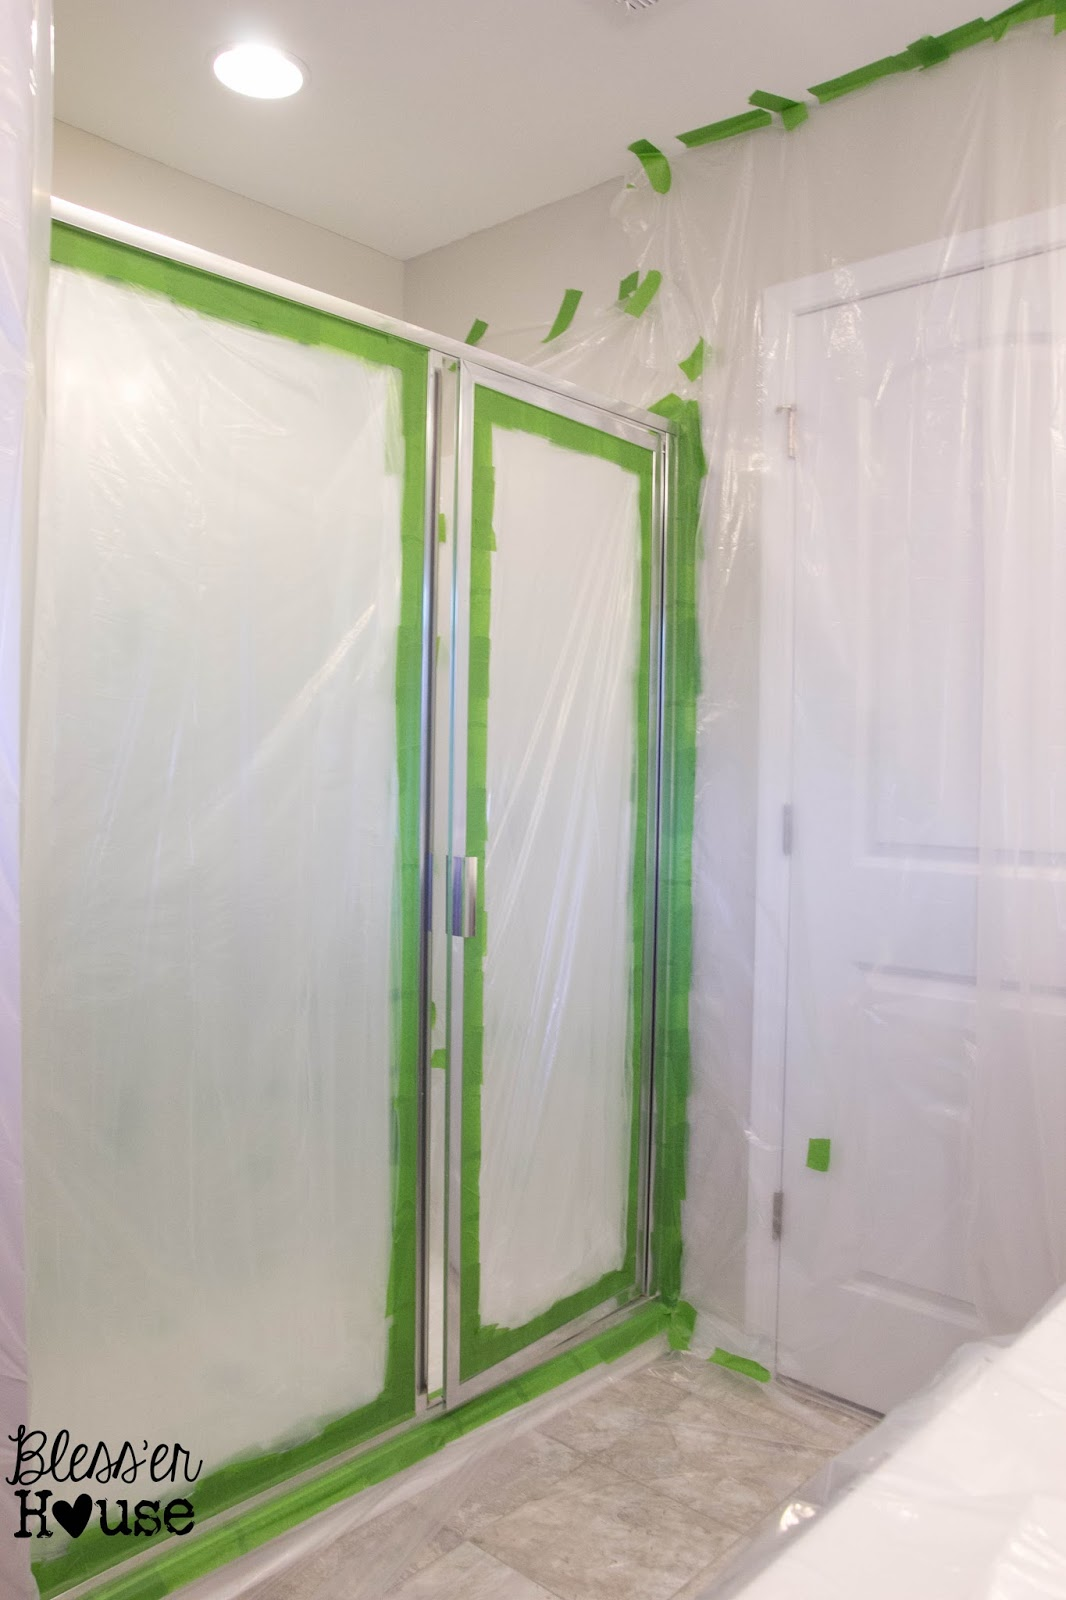 How not to paint a shower door and how to fix spray paint mistakes how not to paint a shower door and how to fix spray paint mistakes planetlyrics